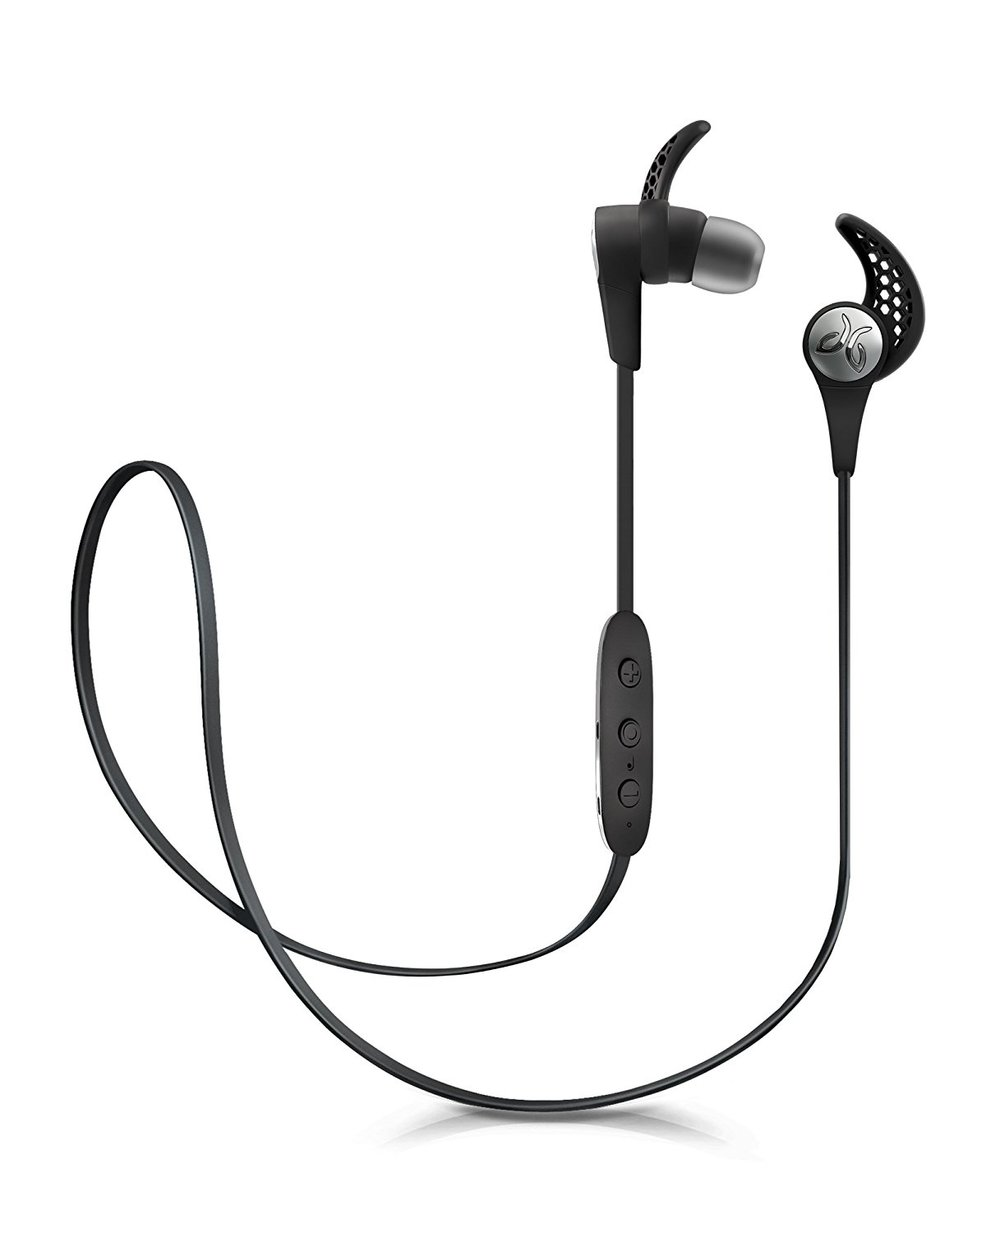 JAYBIRD X3 IN EAR WIRELESS BLUETOOTH SPORTS HEADPHONES